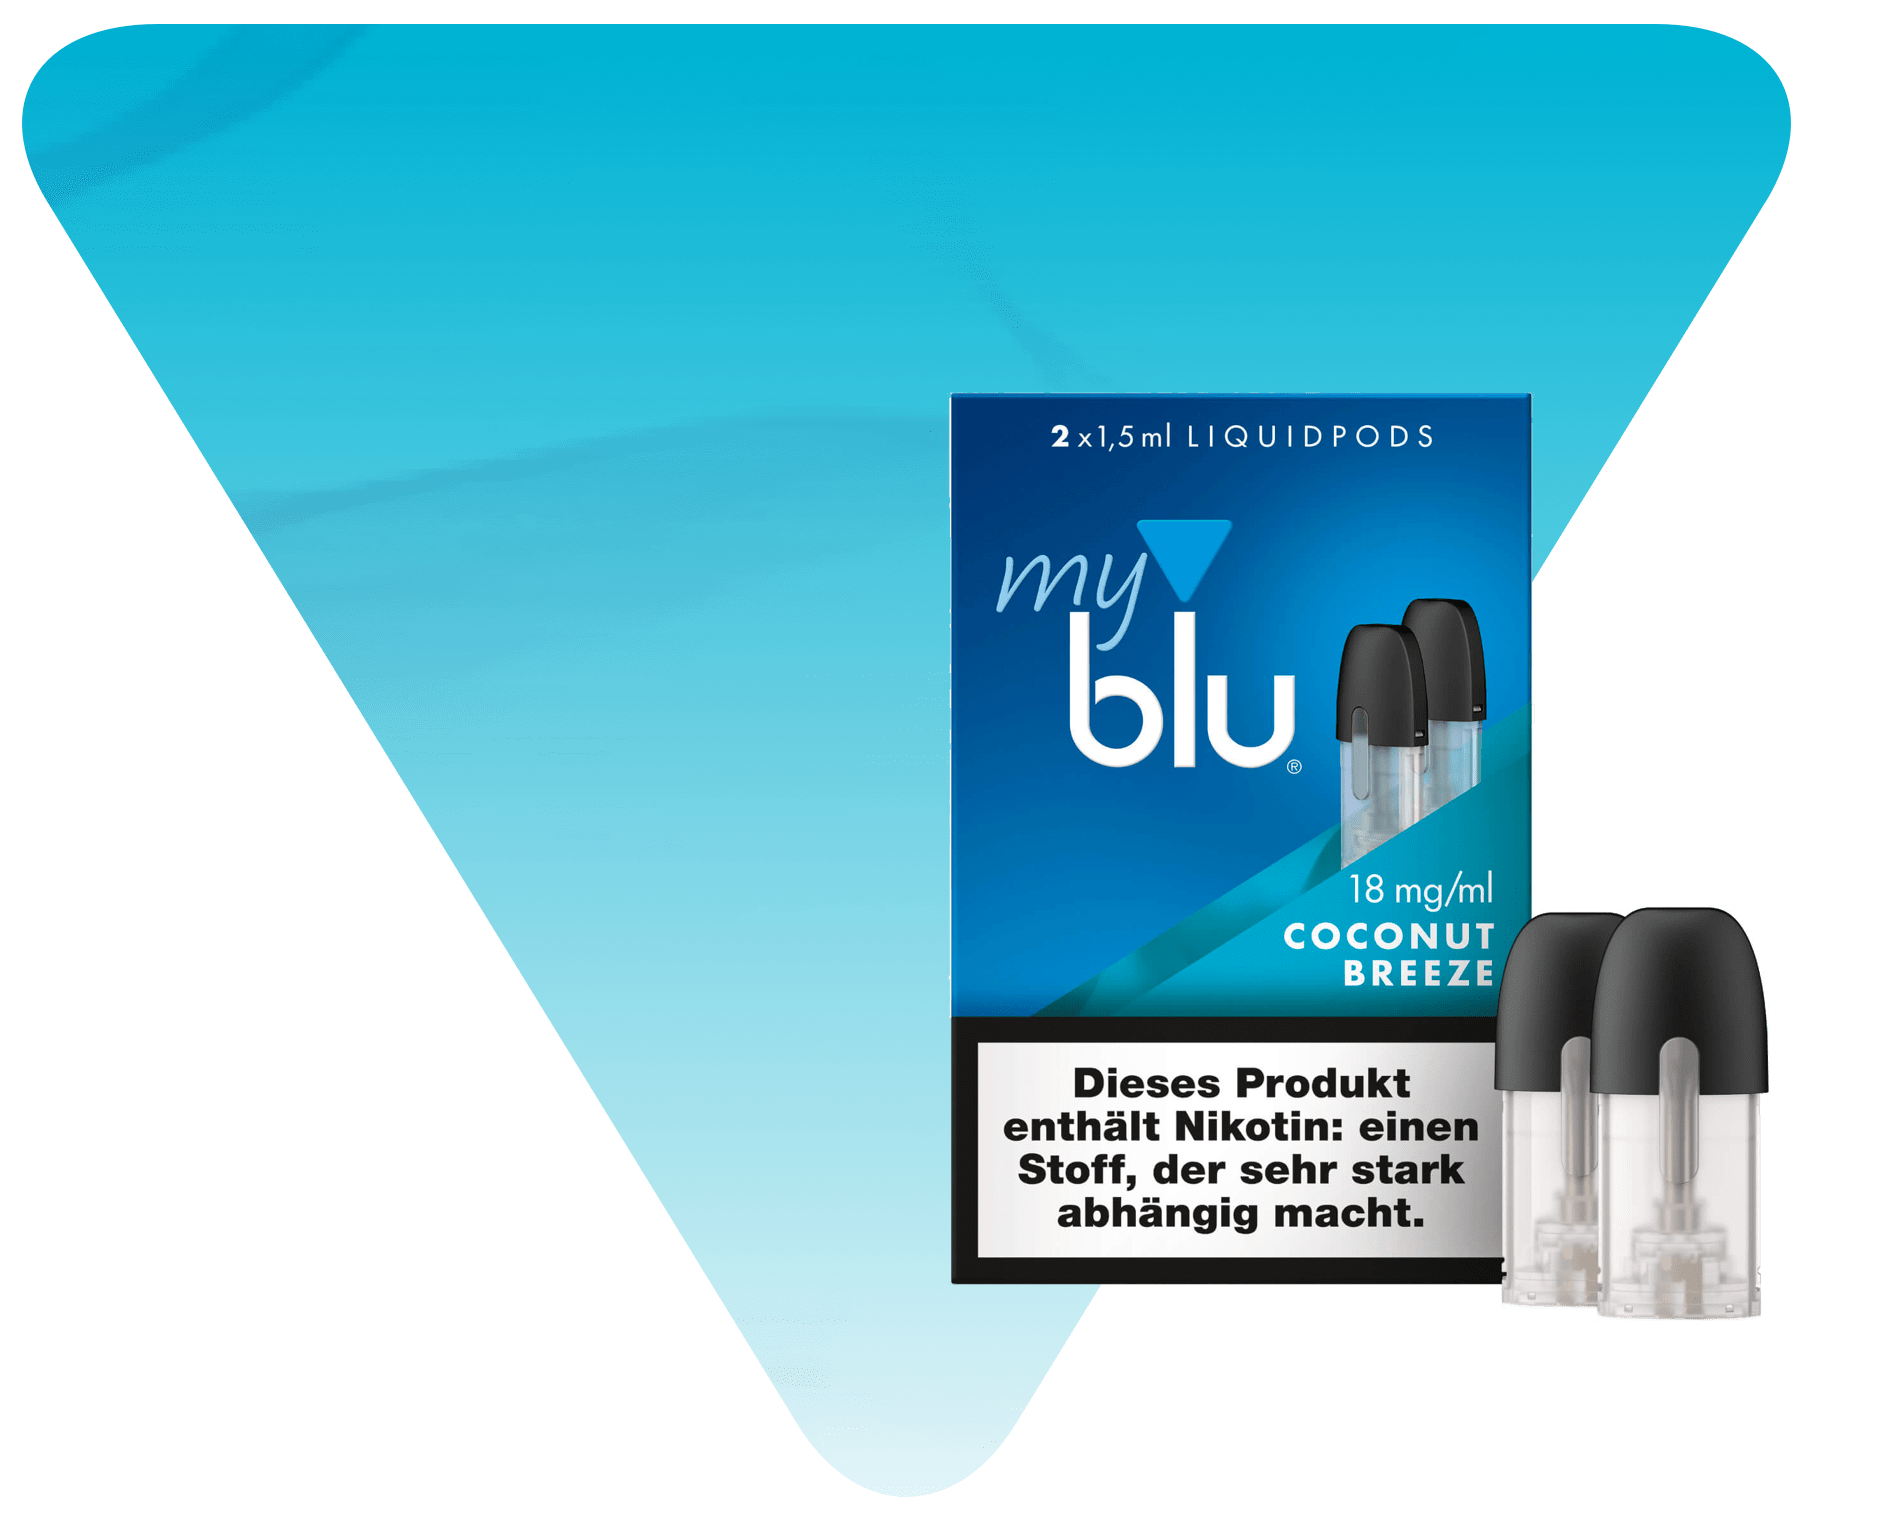 myblu Coconut Breeze Liquidpod